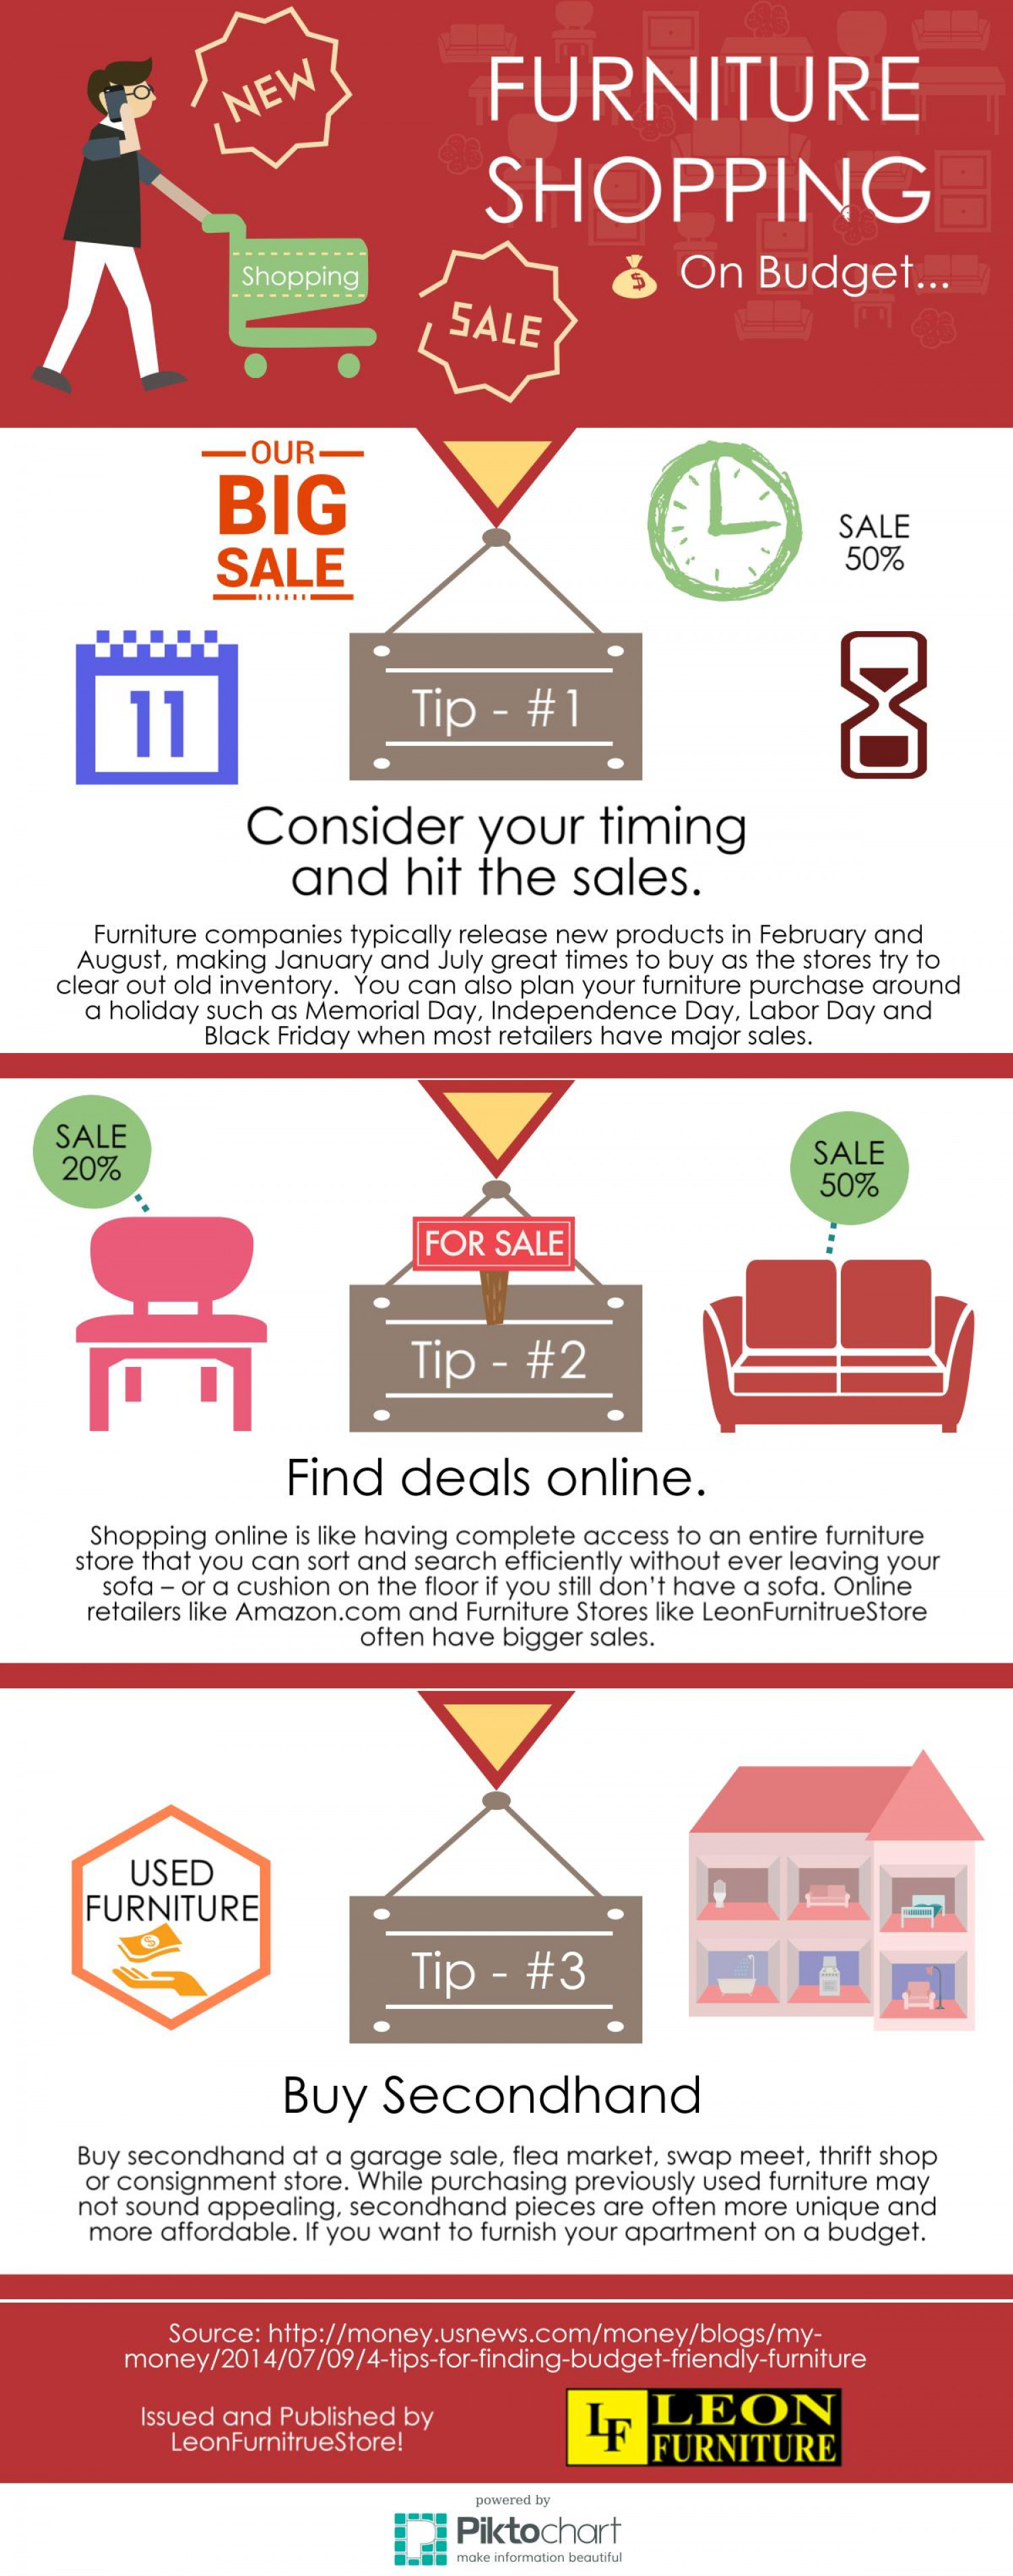 Furniture Shopping On Budget Infographic